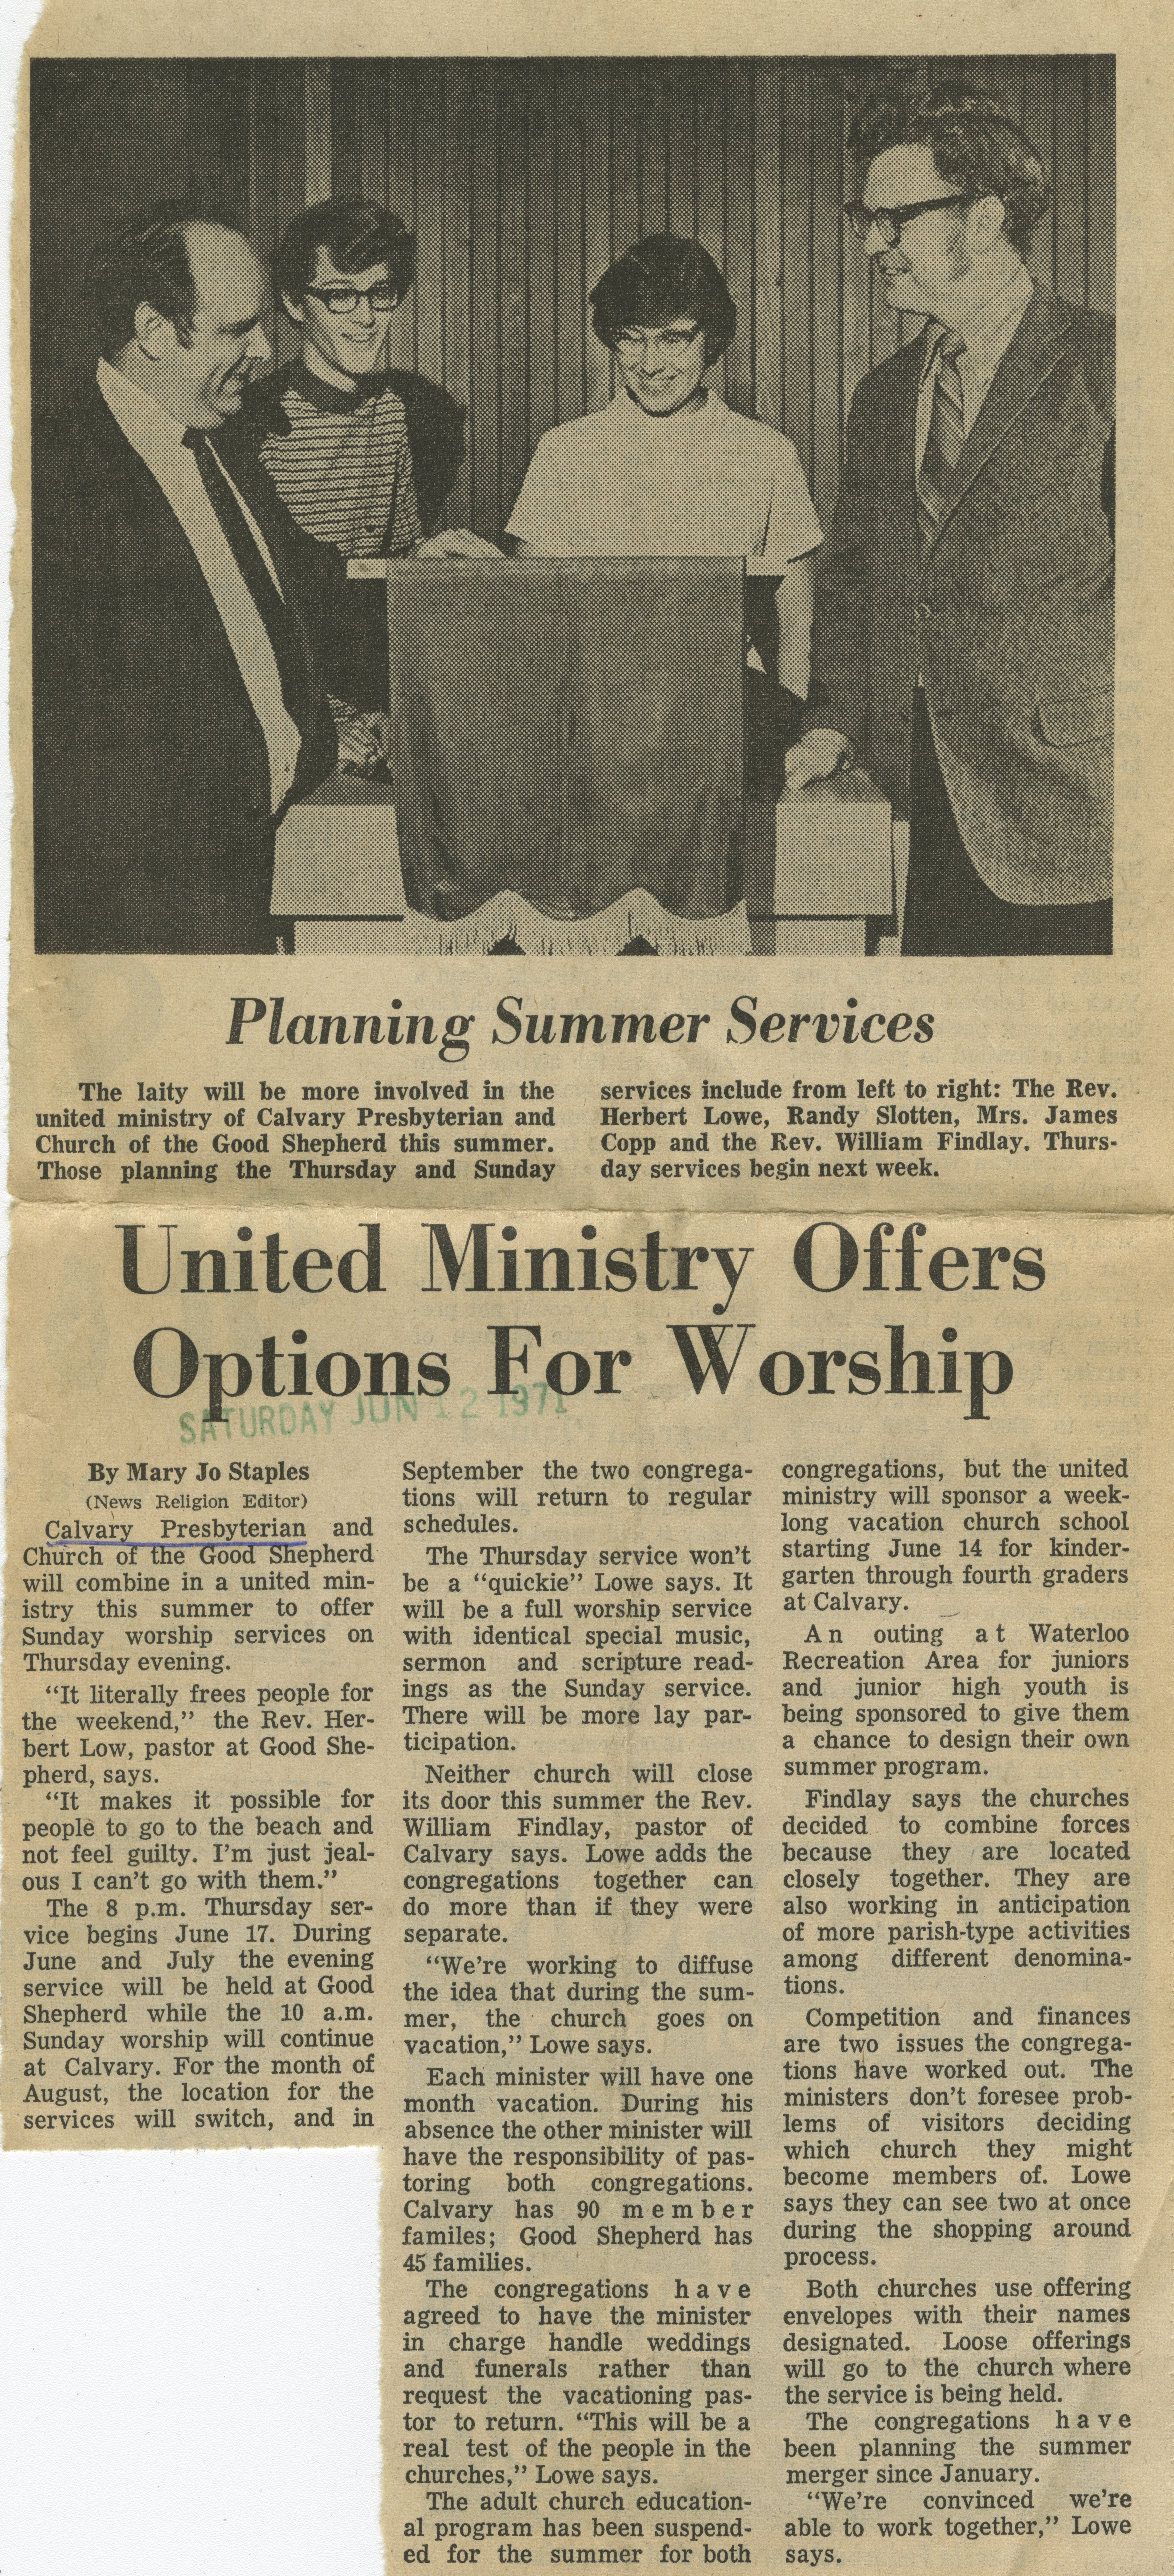 United Ministry Offers Options For Worship image